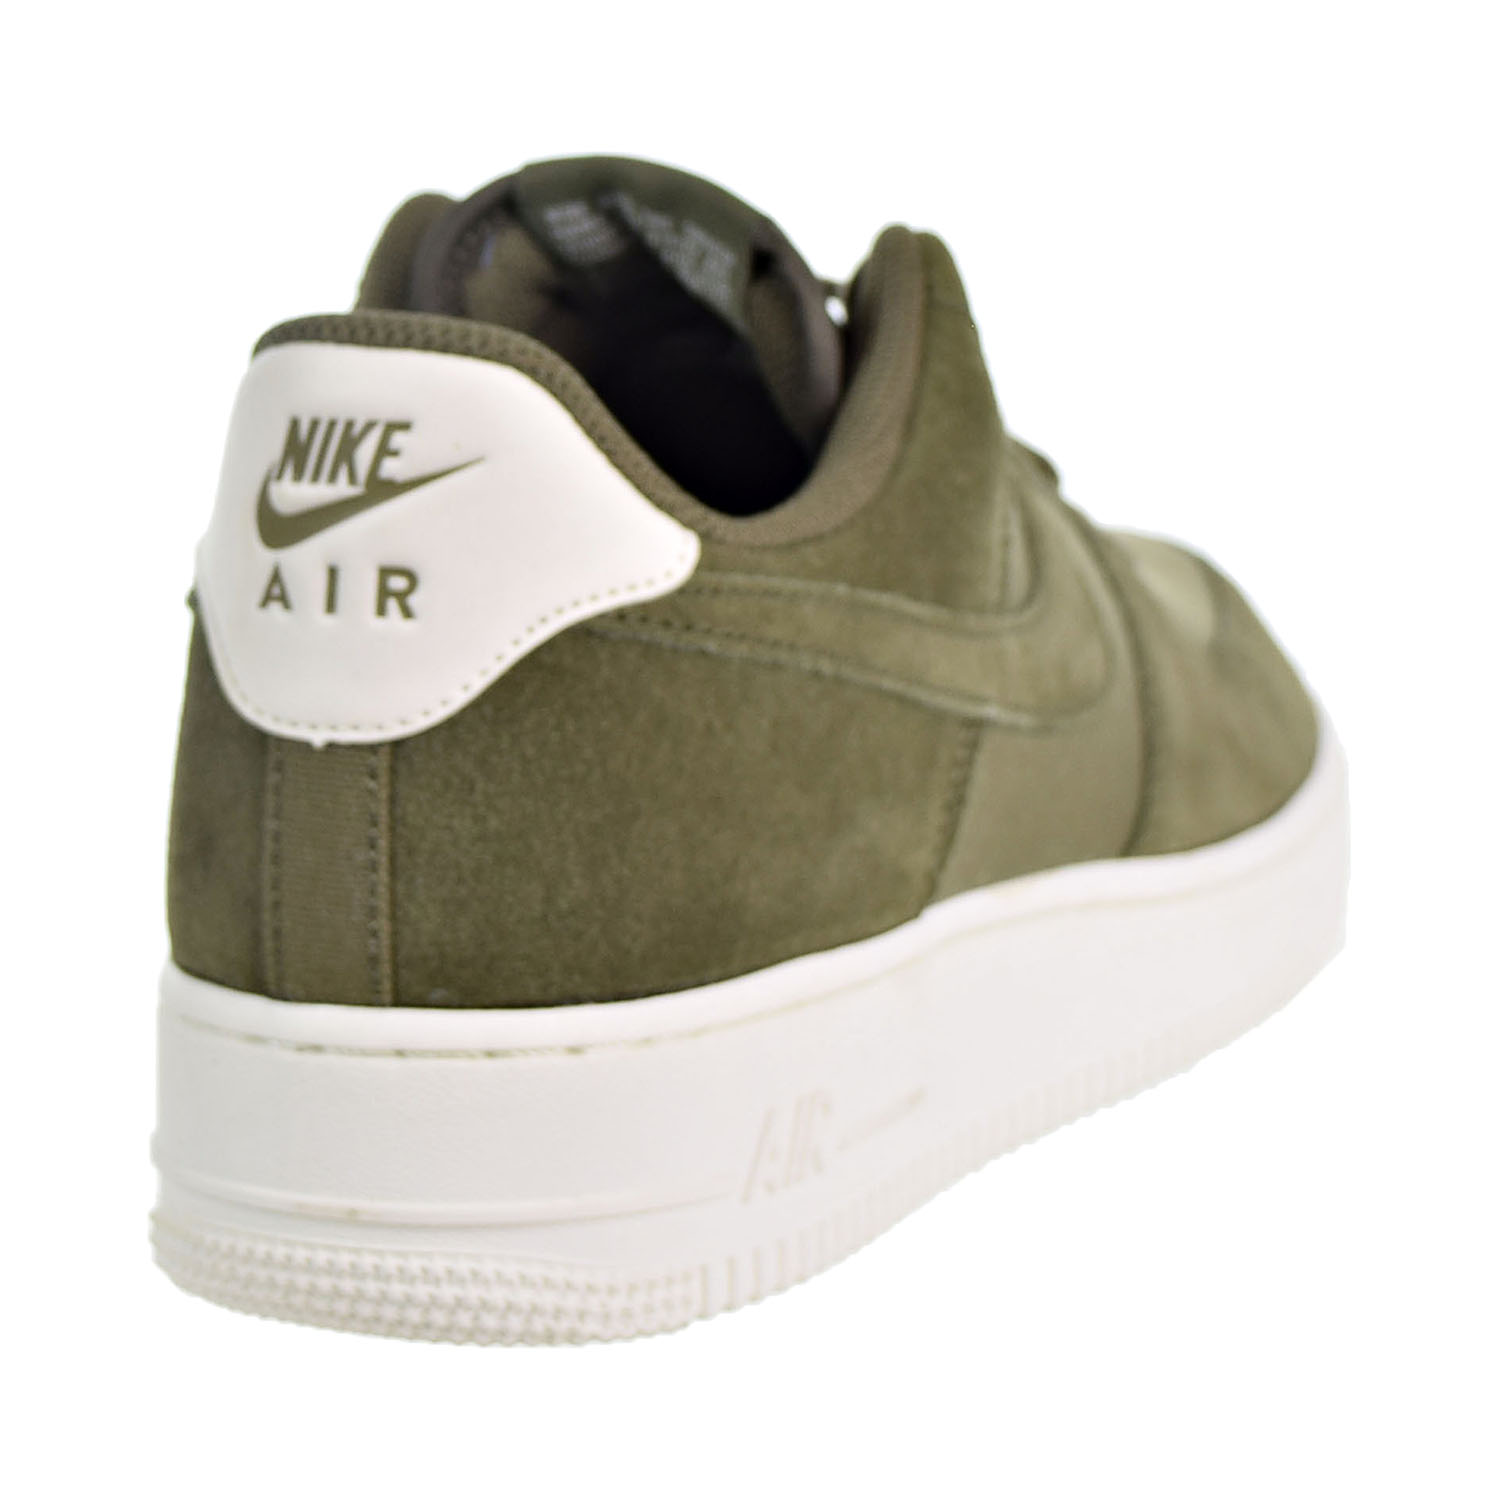 quality design b5778 d56b6 Nike Air Force 1  07 Suede Men s Shoes Medium Olive Sail ao3835-200